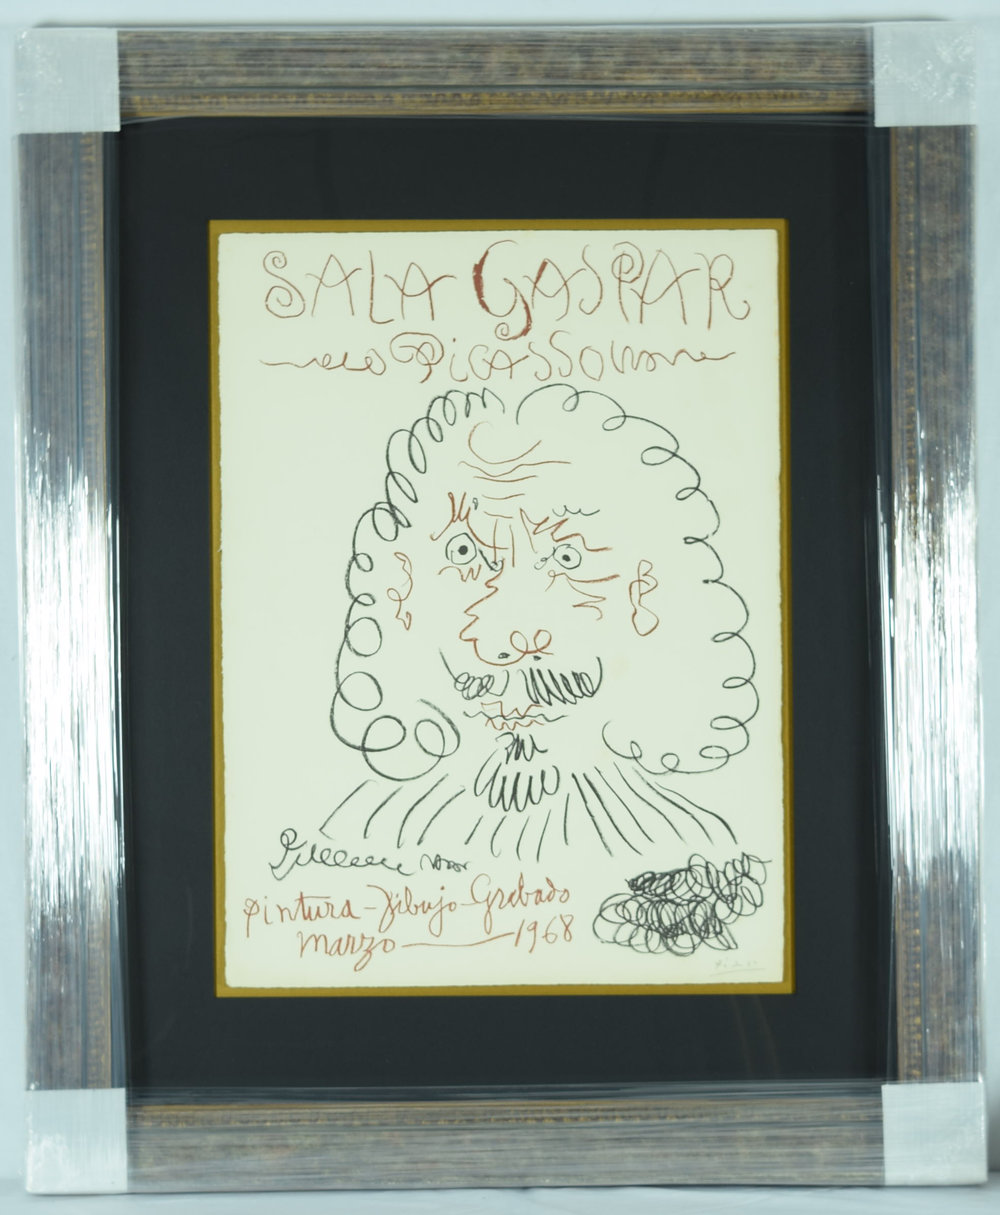 Picasso Original Lithograph Signed & Numbered